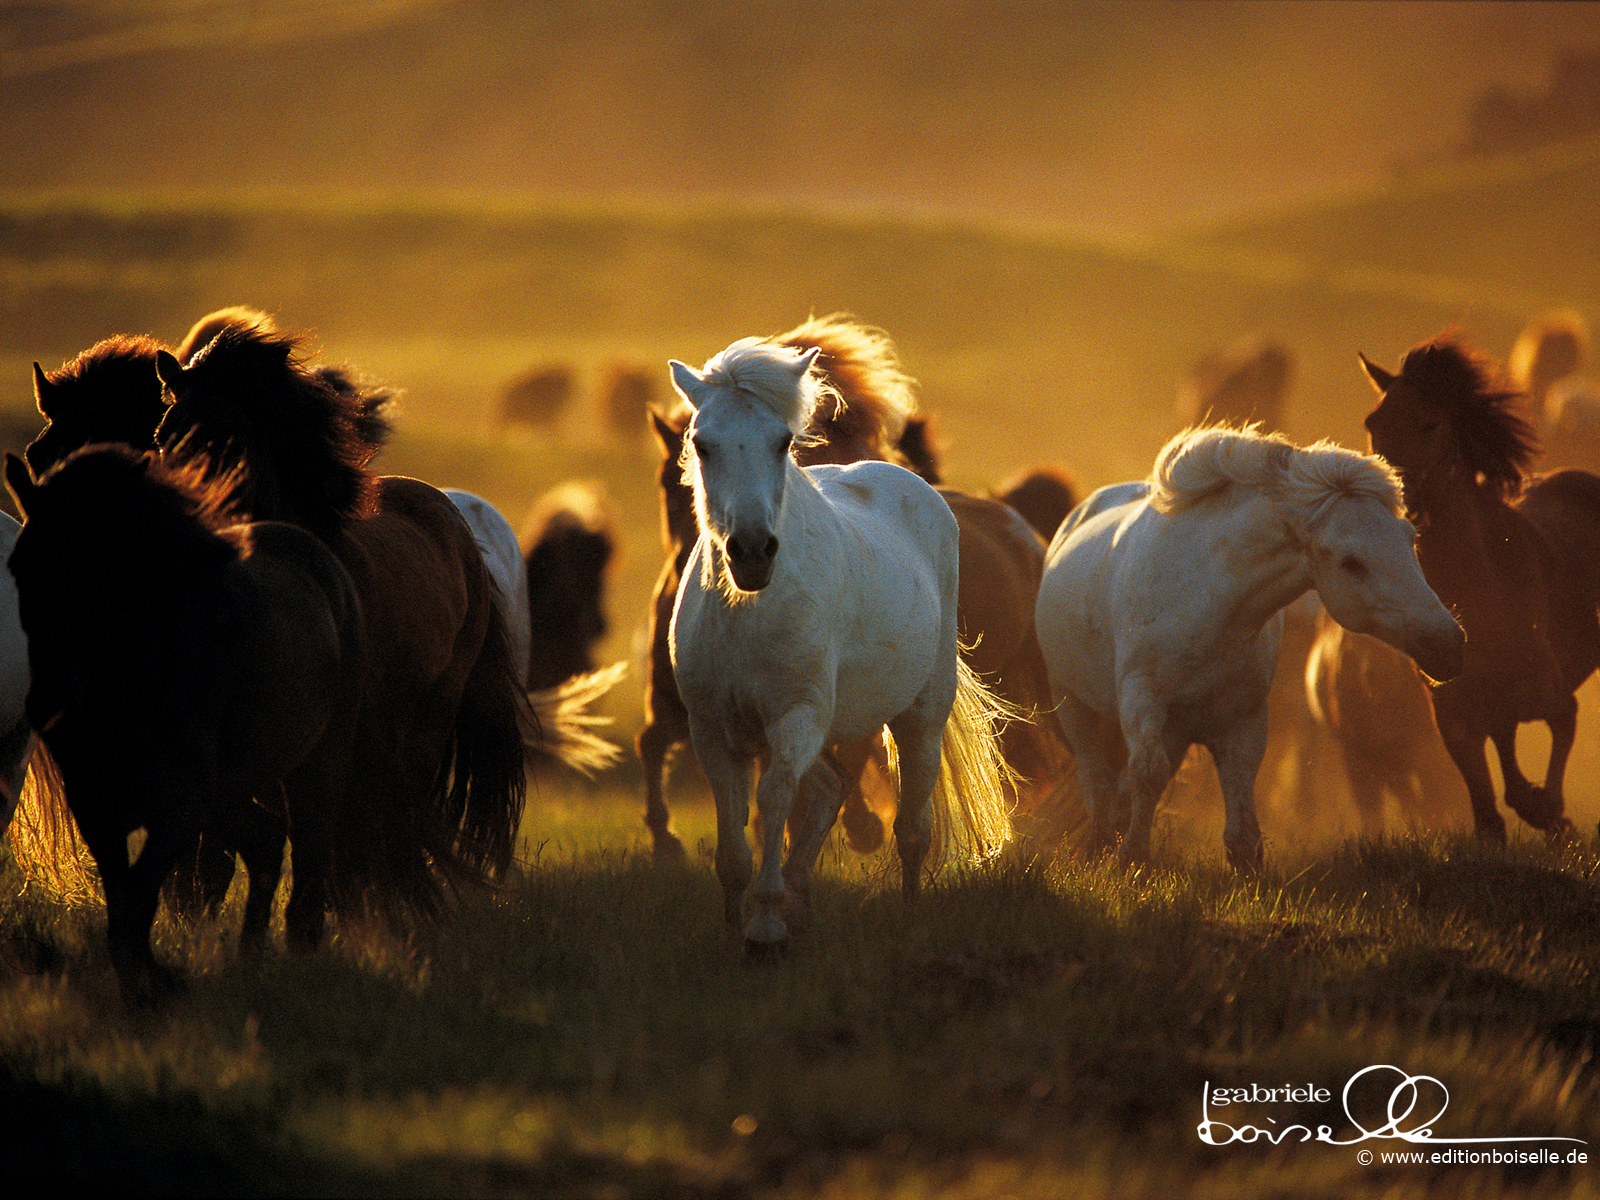 Horses images Horse Wallpaper HD wallpaper and background photos 1600x1200